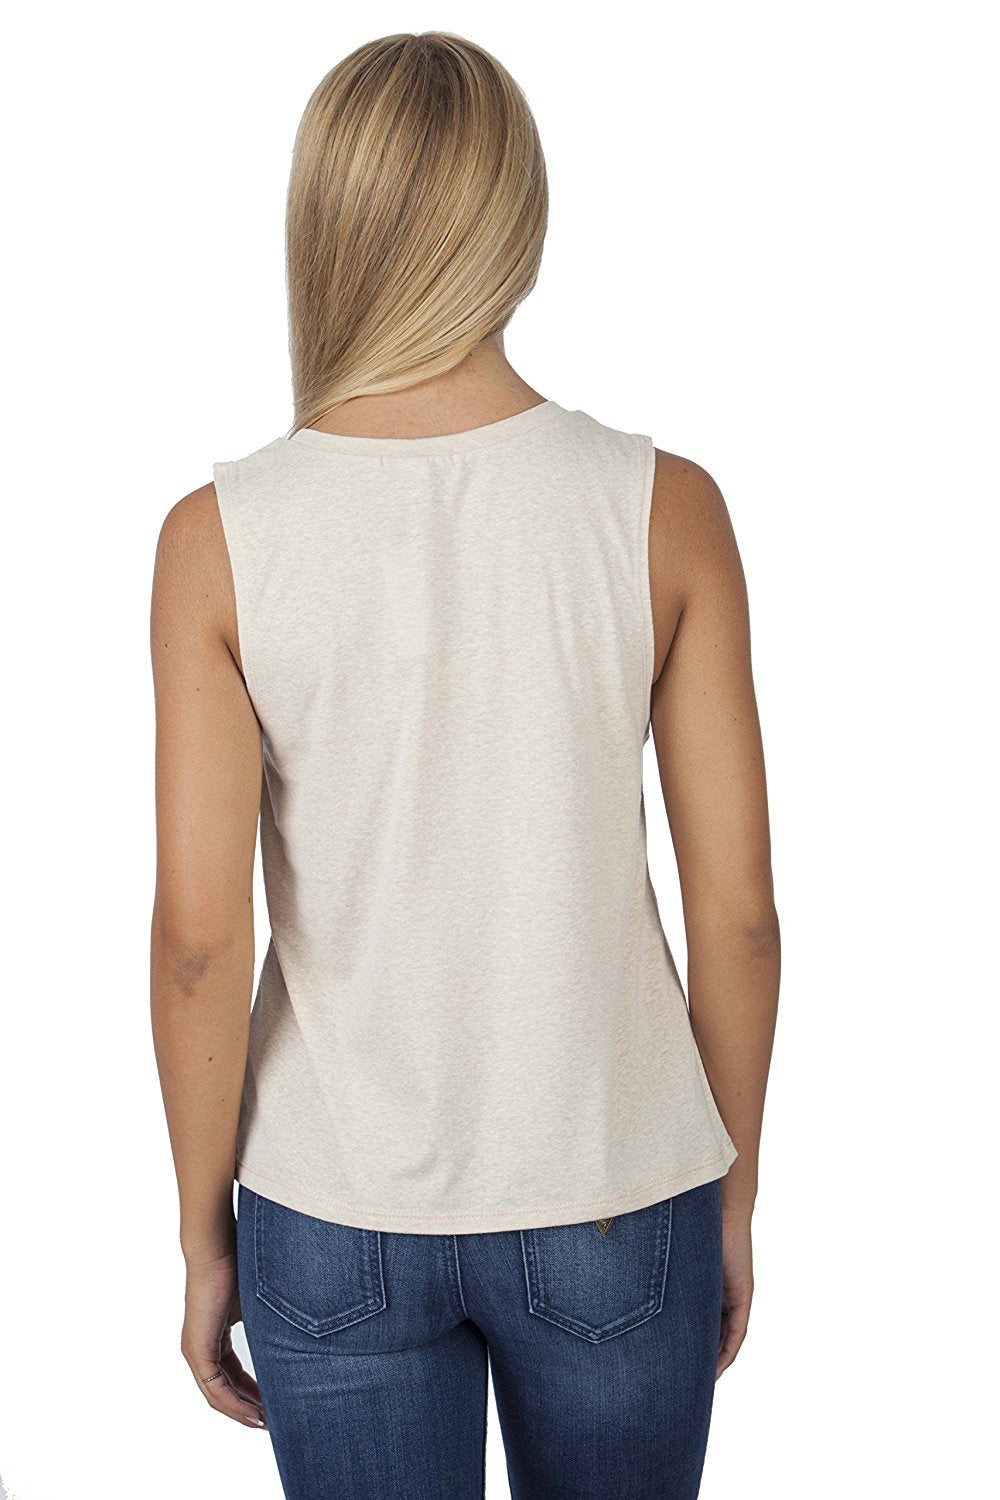 Hollywood Star Fashion Cutout Drop-Arm Tank Top Cotton Shirt